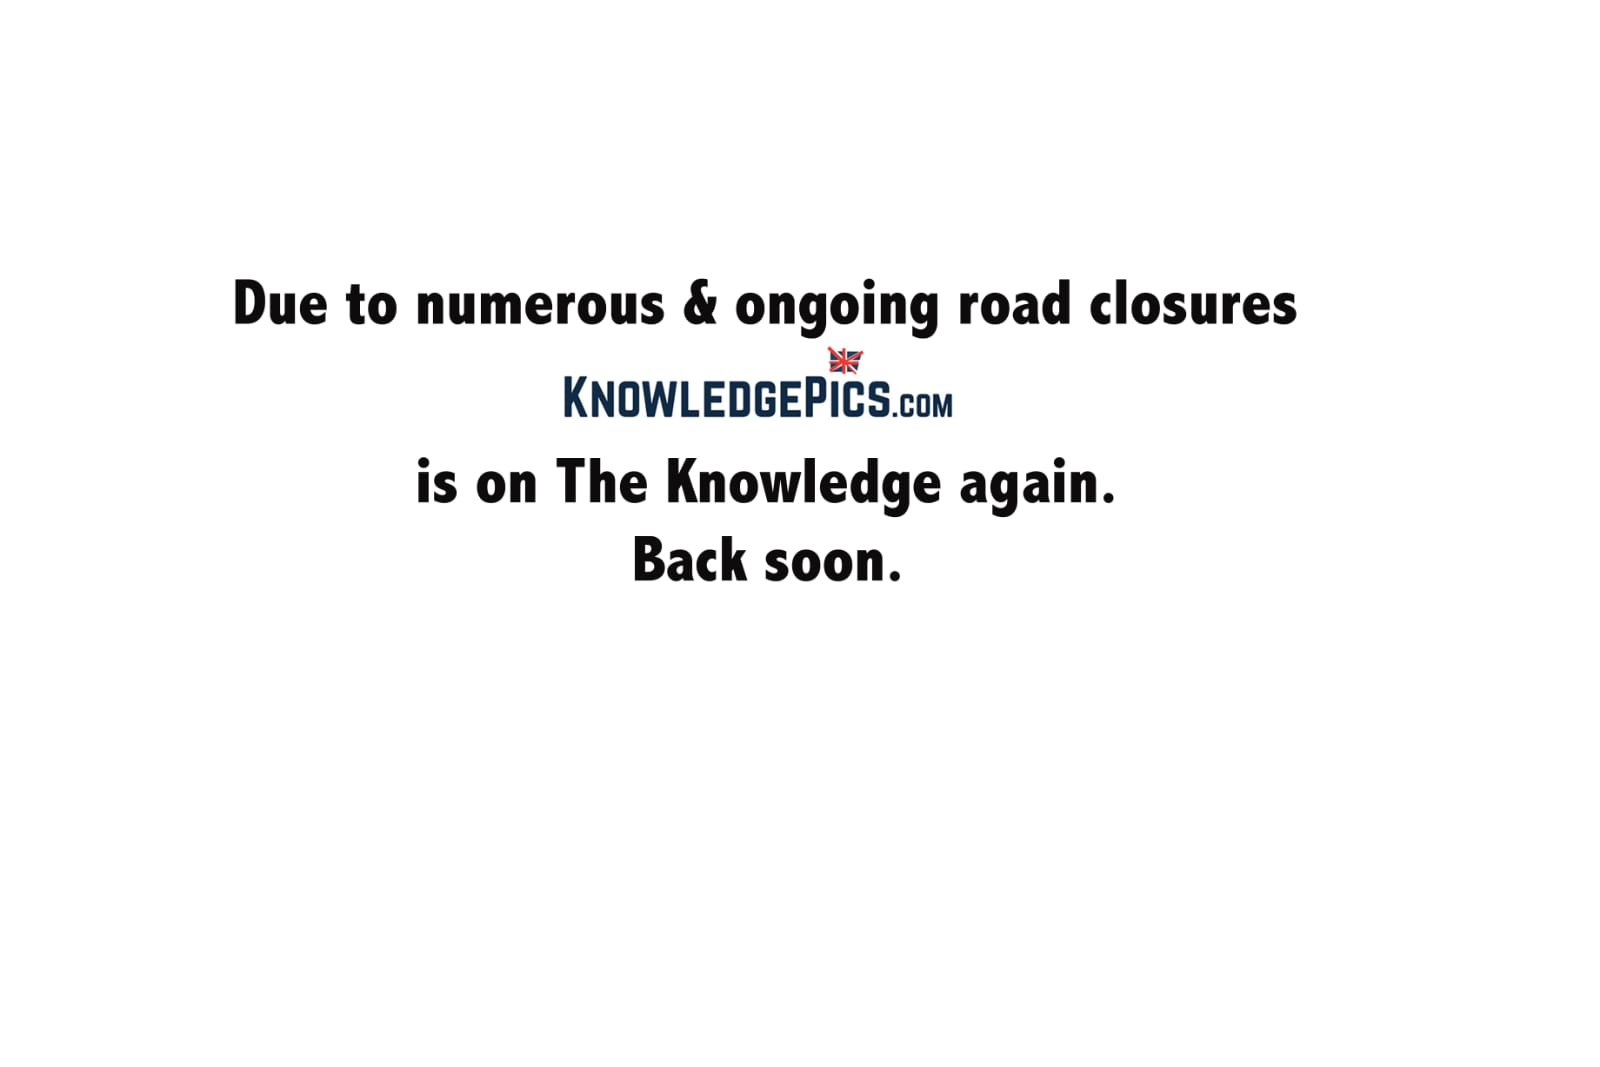 Knowledge Pics